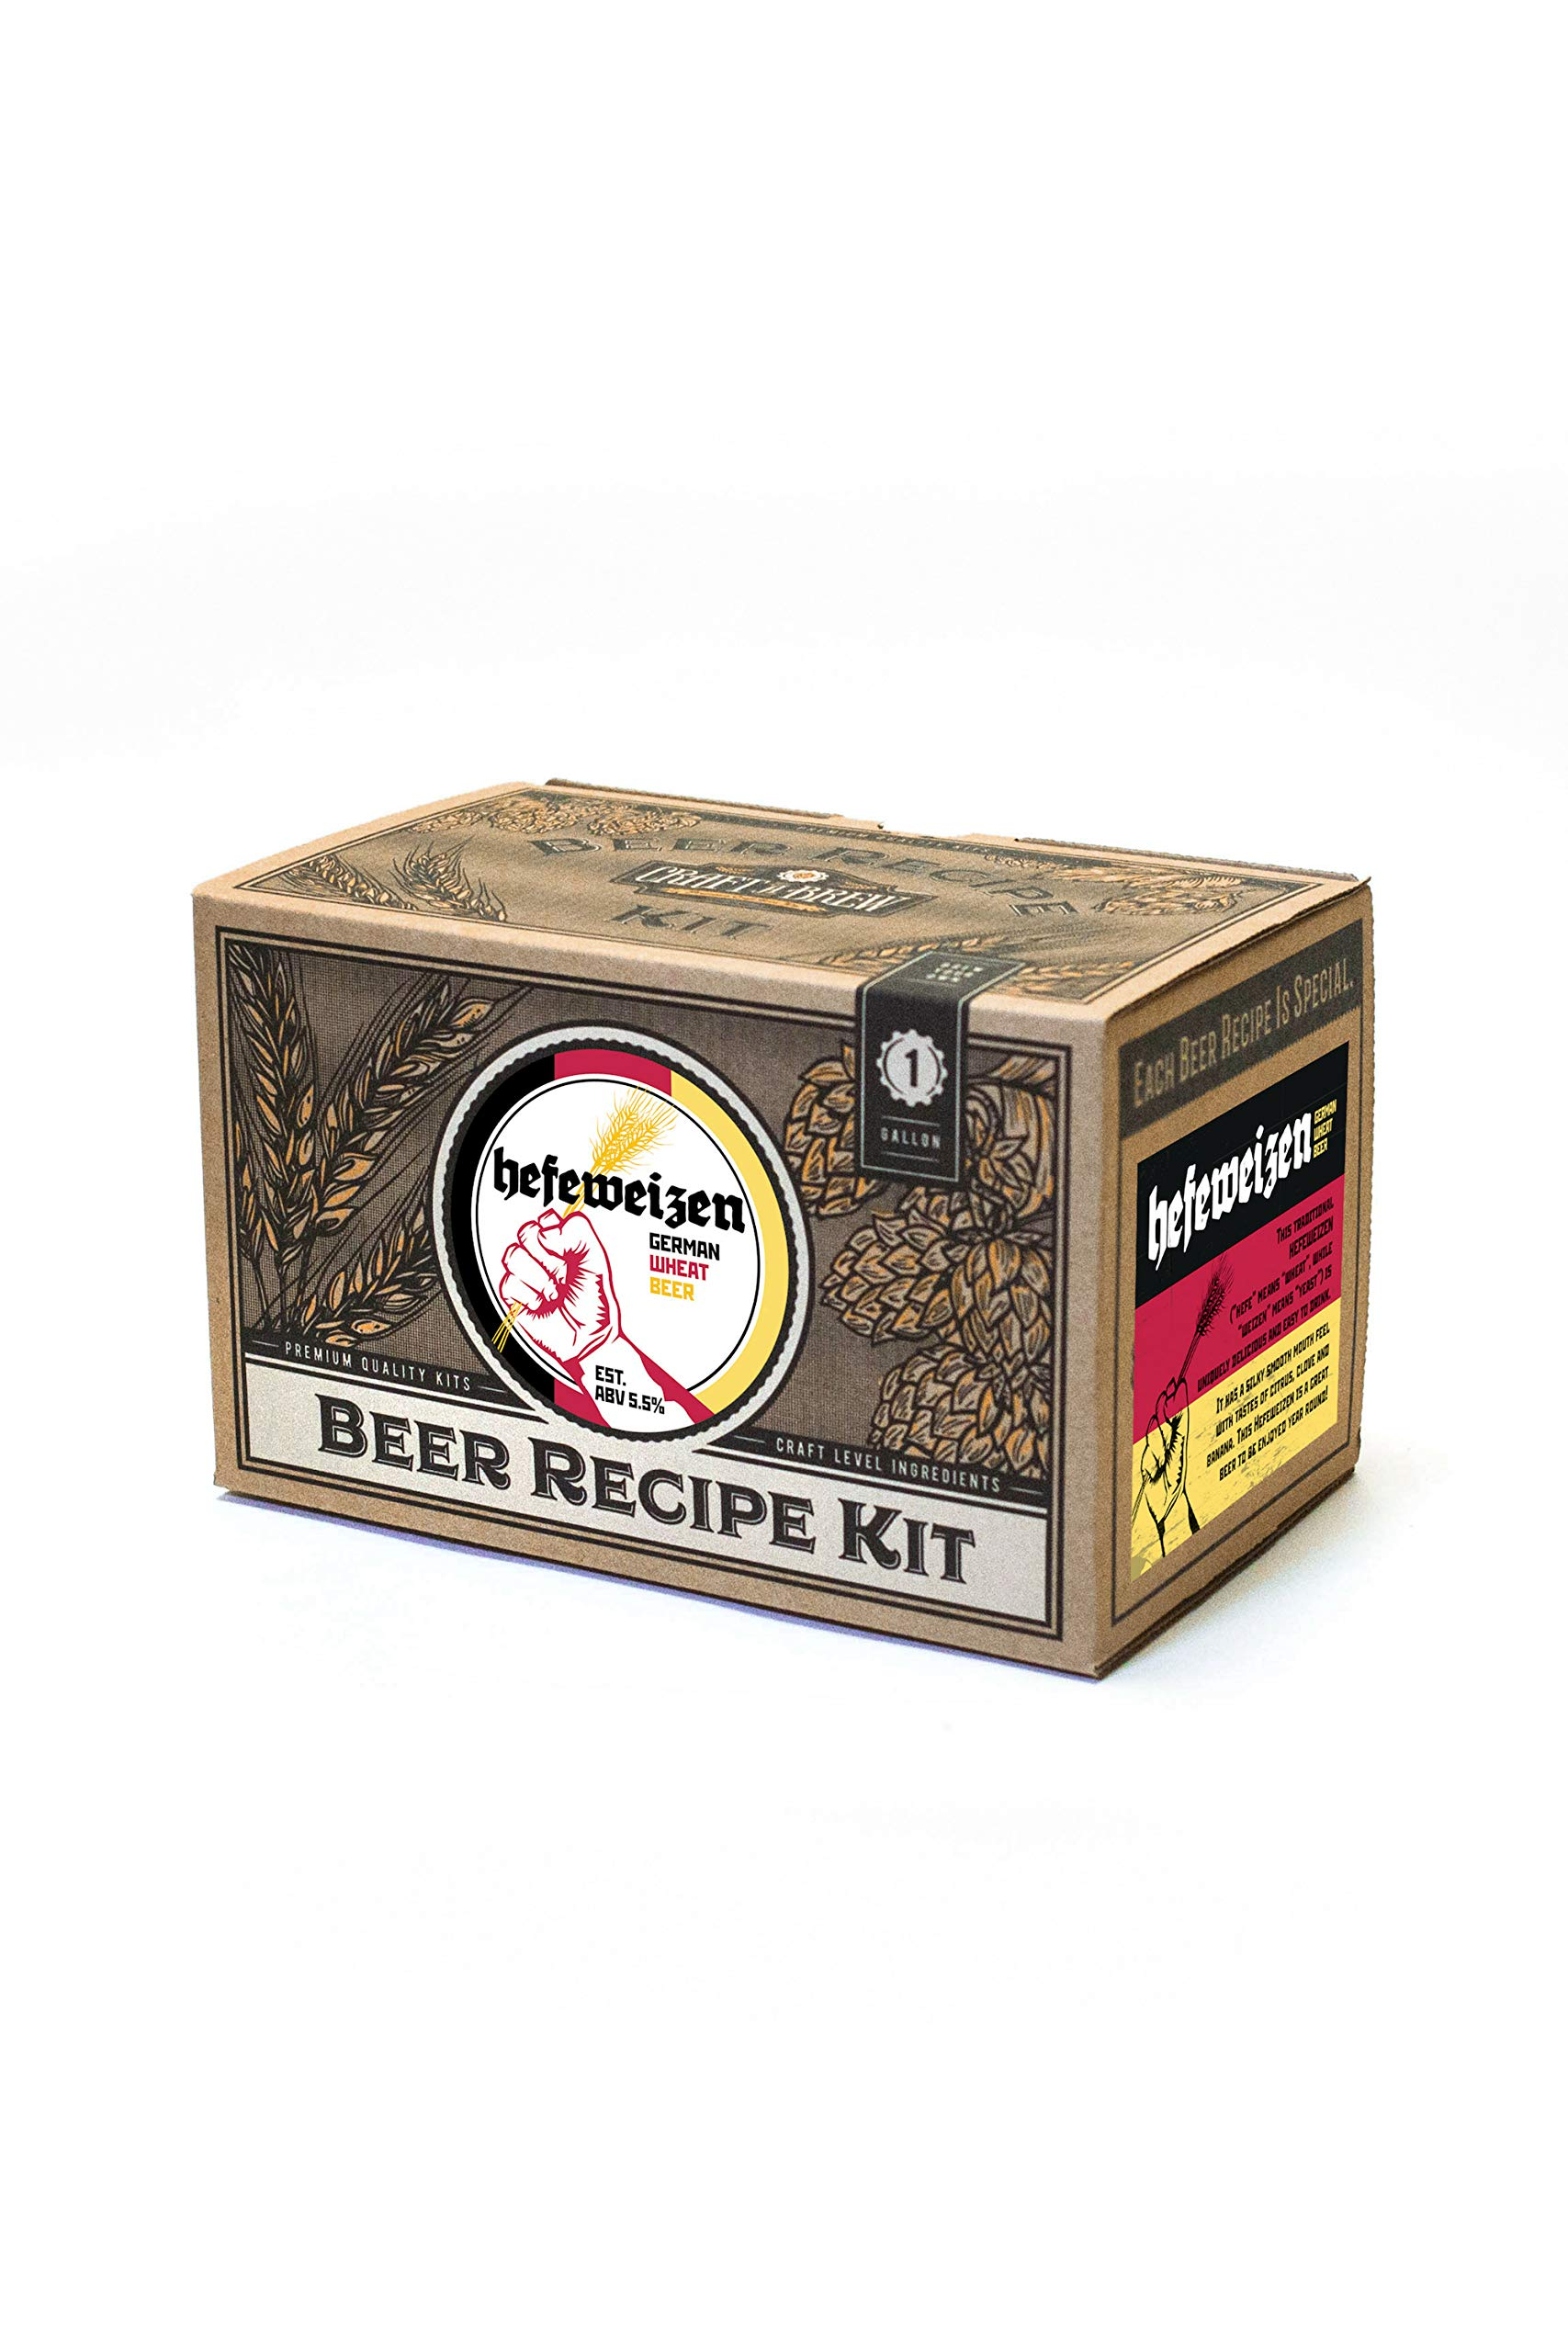 Home Brew Ingredient Kit - Craft a Brew 1 Gallon Beer Recipe Hefeweizen Beer Kit - Beer Recipe Kit - Make Your Own Beer with Home Brewing 1 Gallon Kits - Home Brewing Ingredient Kit by Craft A Brew